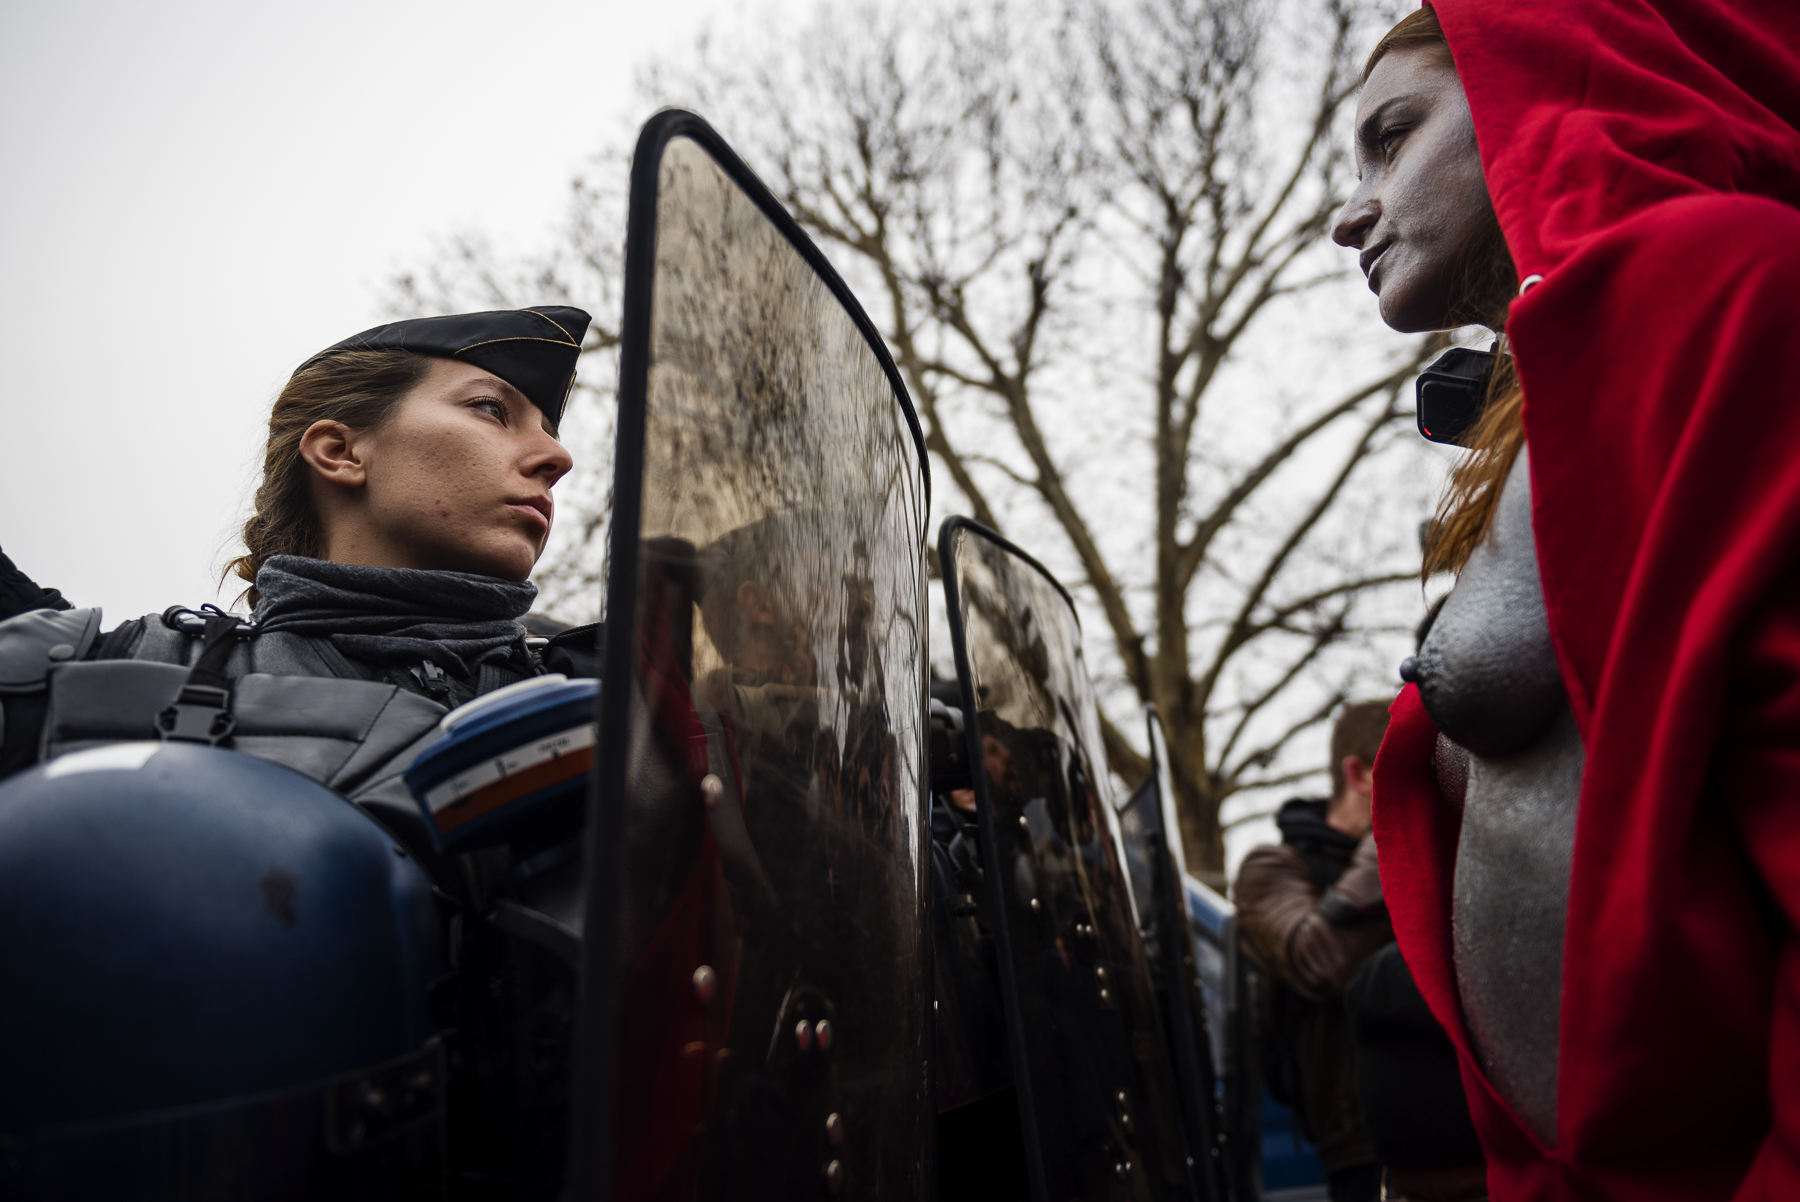 Women dressed as the 'Marianne', the national symbol of the French Republic, face French Gendarmes in the Champs Elysees Avenue in Paris, on December 15, 2018, as they take part in a demonstration called by the 'Gilets Jaunes' ('Yellow Vest') to protest against rising costs of living they blame on high taxes. Despite French government ministers appeals to the nationwide 'Gilets Jaunes' ('Yellow Vest') protests to stop in the wake of the Strasbourg attack that killed three people on December 11, protesters took the streets of France for the fifth consecutive Saturday. The 'Gilets Jaunes' ('Yellow Vest') movement - began on November 17, 2018 and inspired by opposition to a new fuel tax - has absorbed a wide range of anti-government sentiment and wrecked Paris and other French cities for over a month.